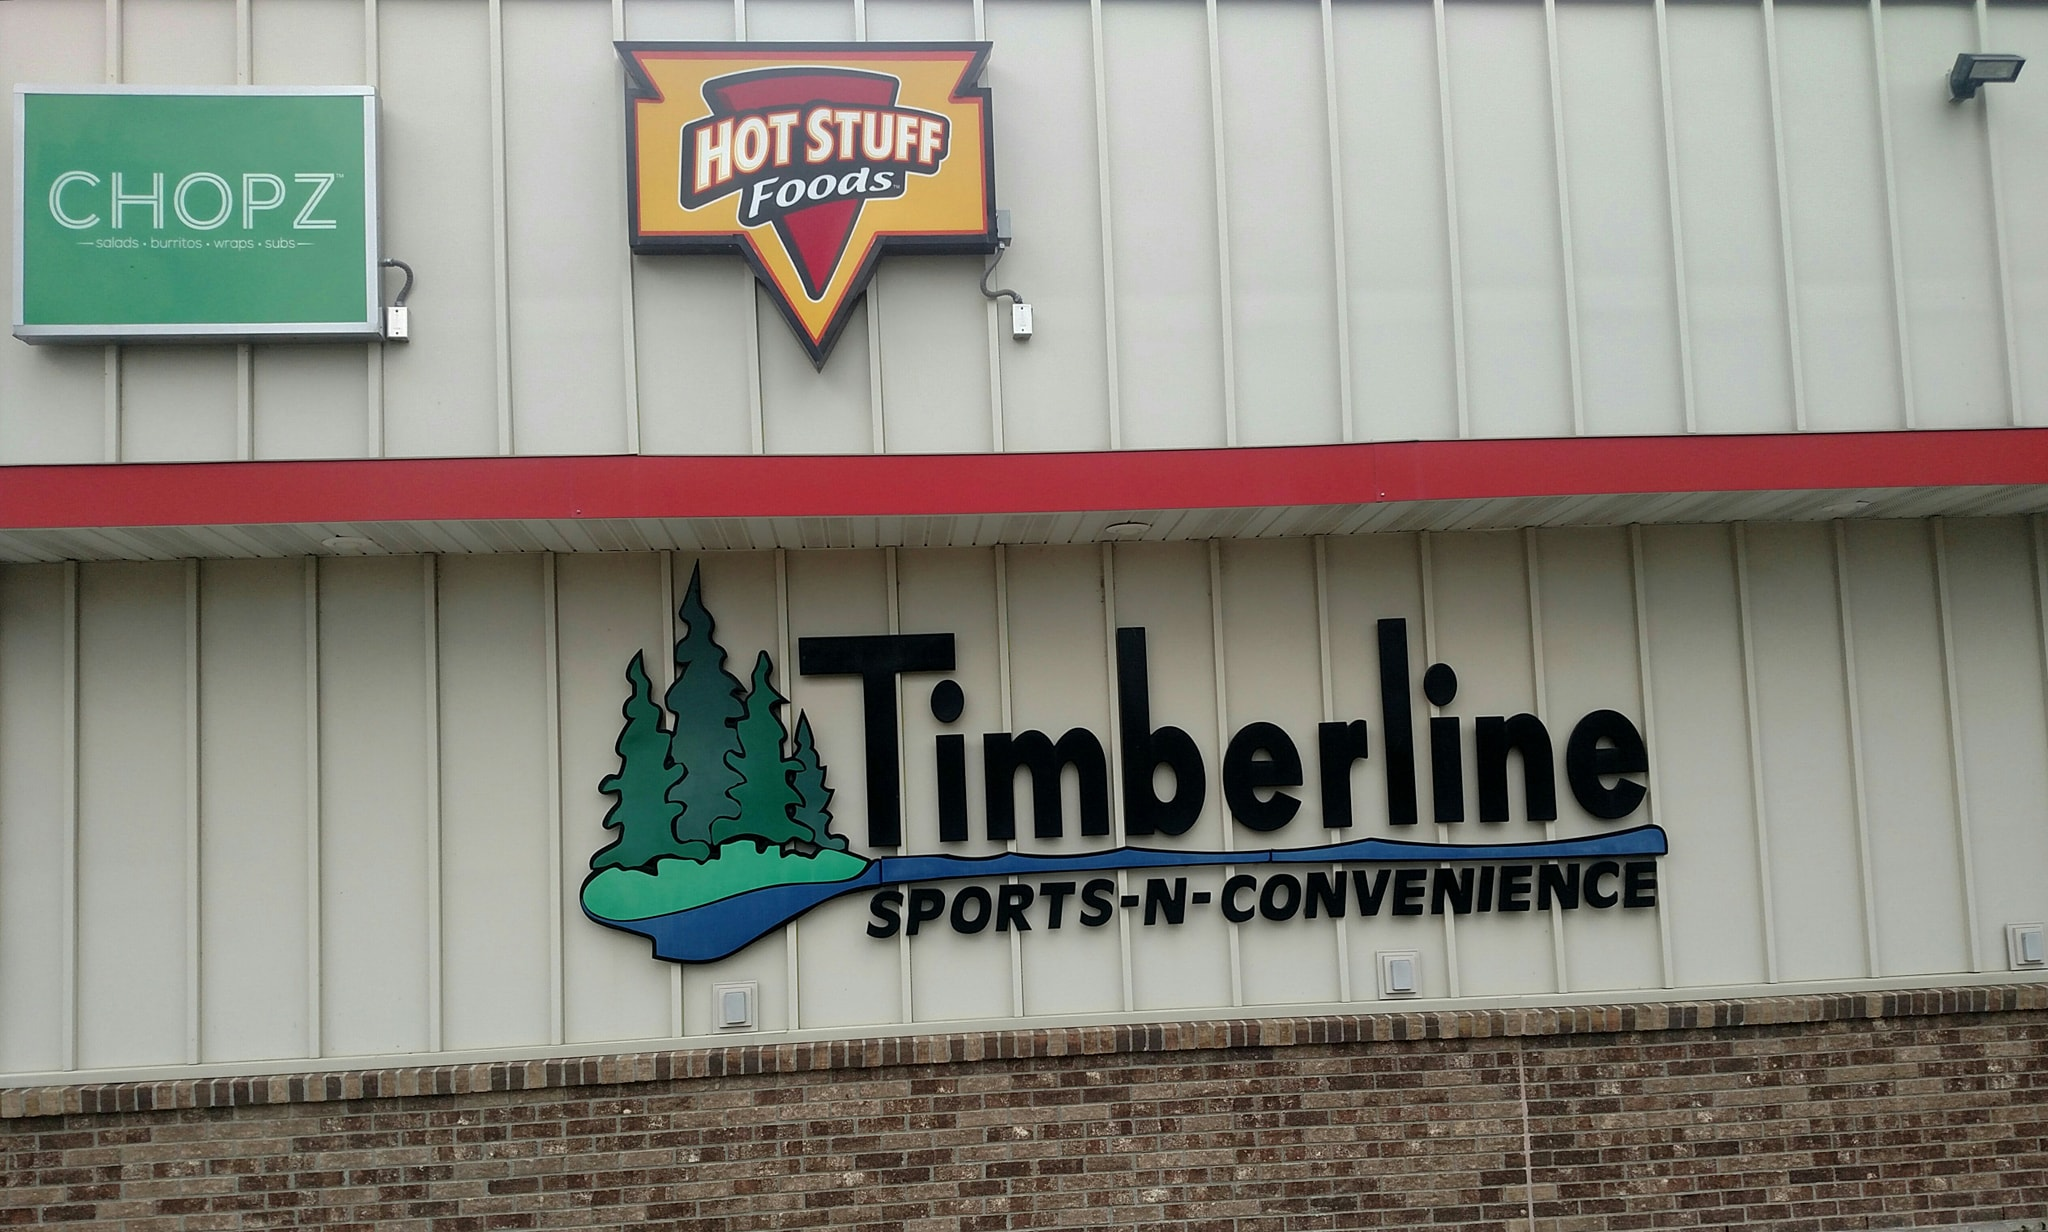 Timberline Sport 'n' Convenience